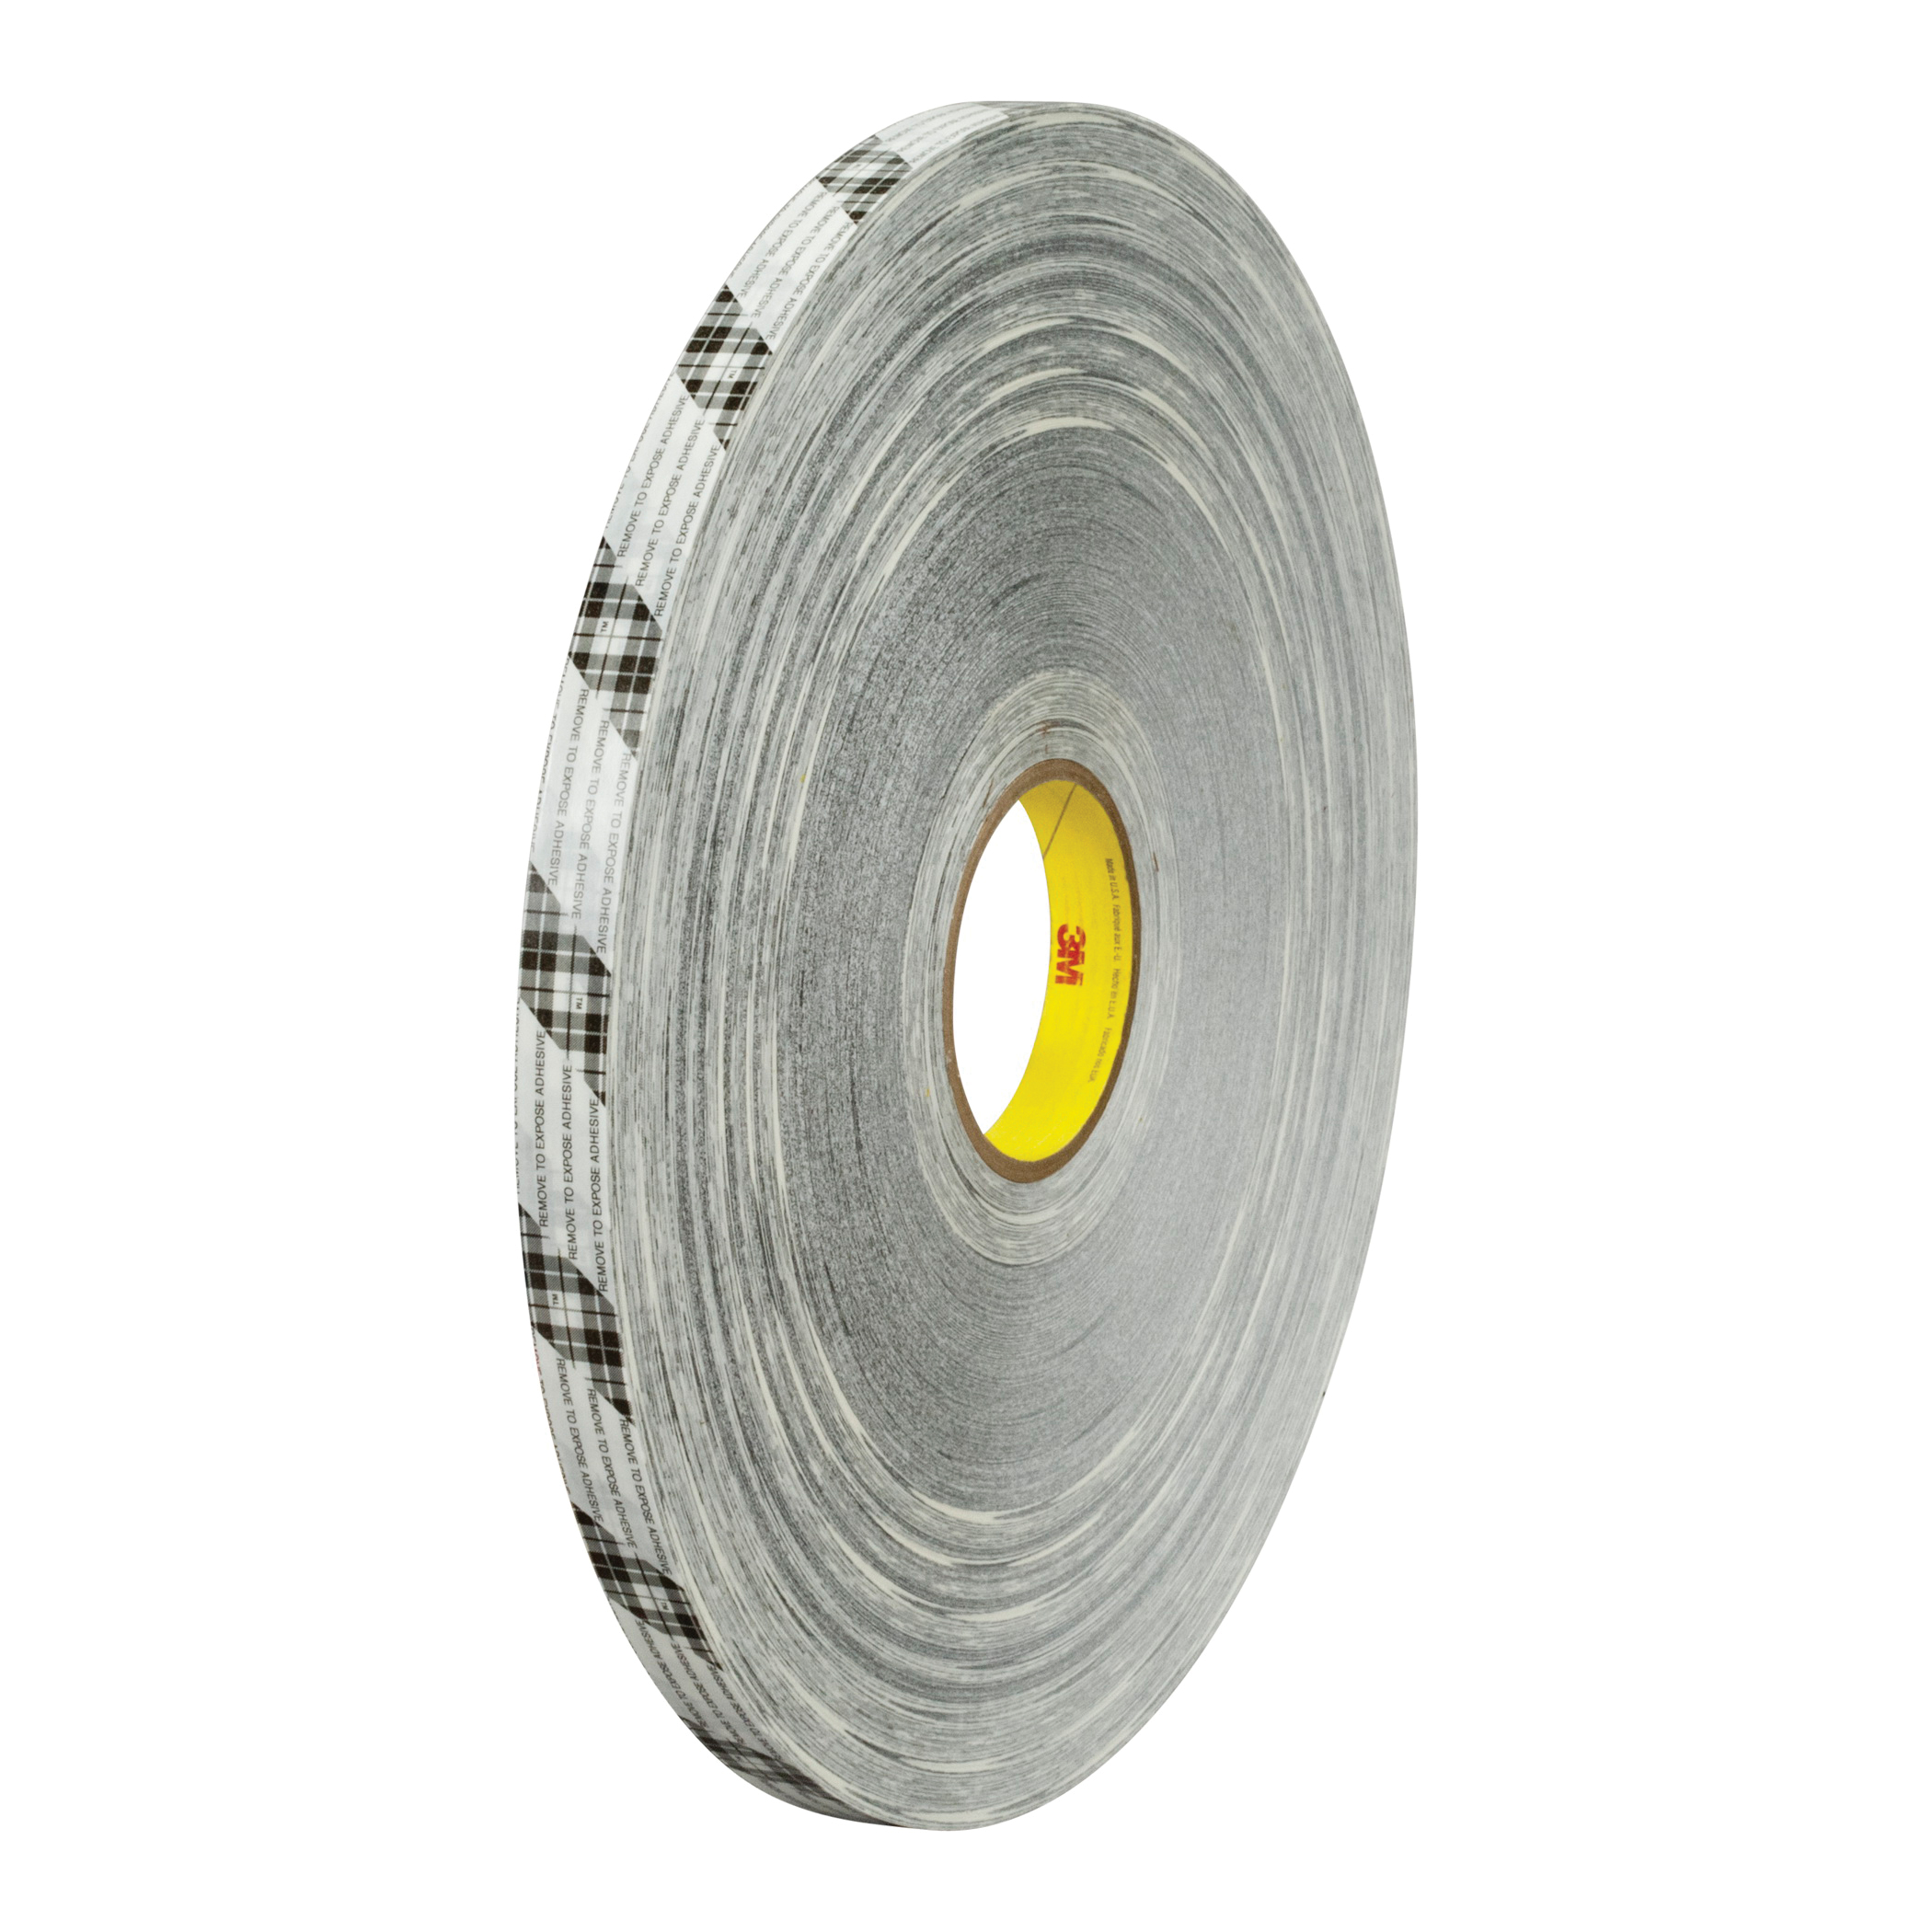 3M™ 021200-65651 Extended Liner Double Coated Tape, 750 yd L x 1 in W, 2.5 mil THK, 770 Rubber Resin Adhesive, Tissue Paper Backing, Off-White Translucent